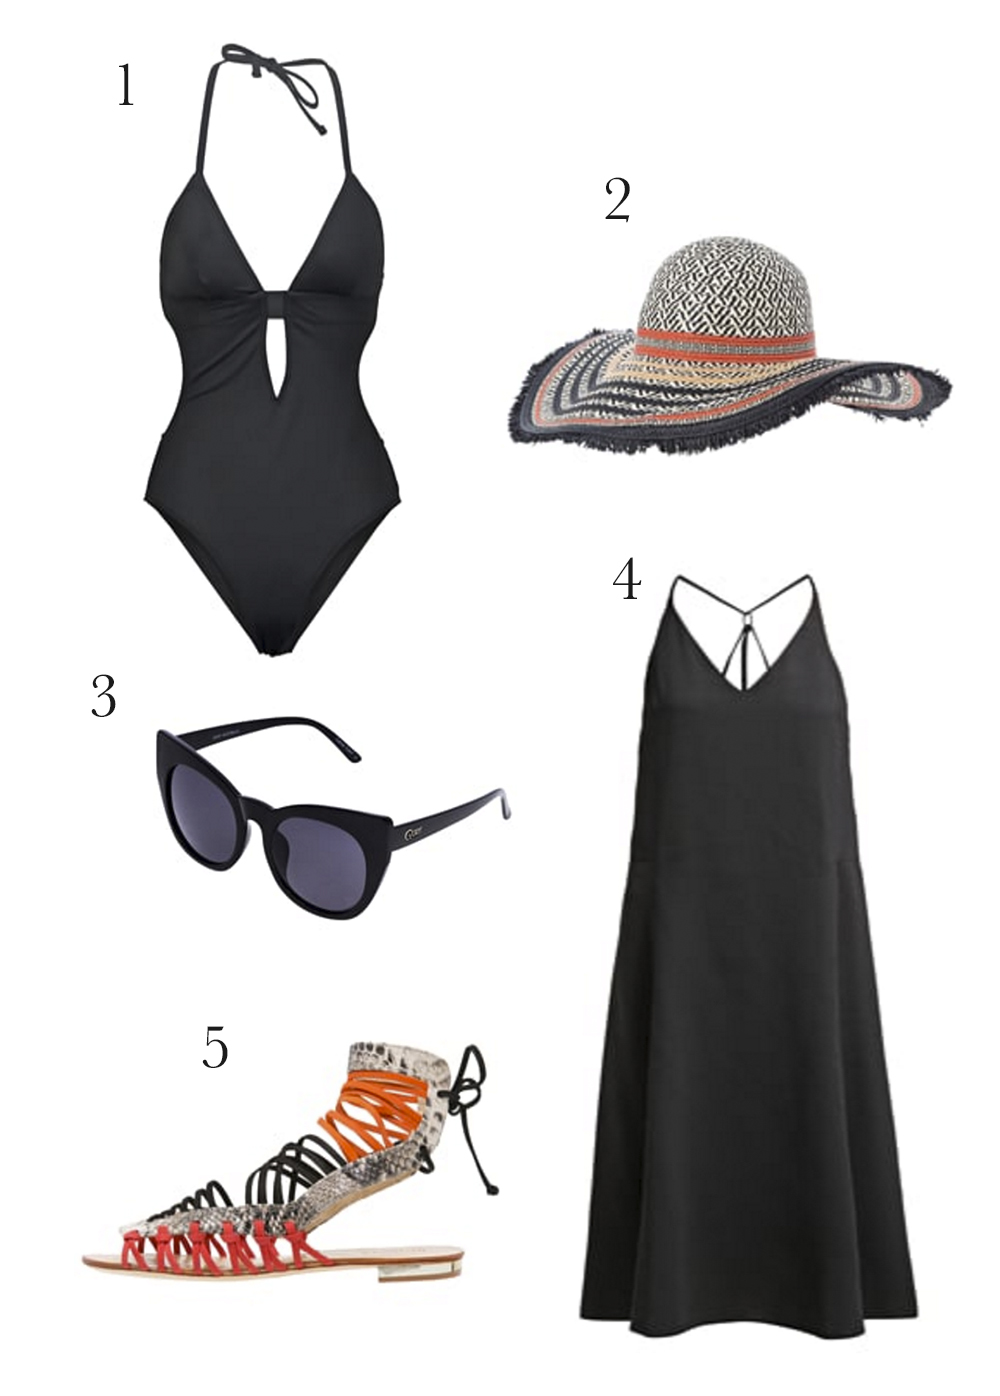 beach outfit bikini dress sunnies zalando 2